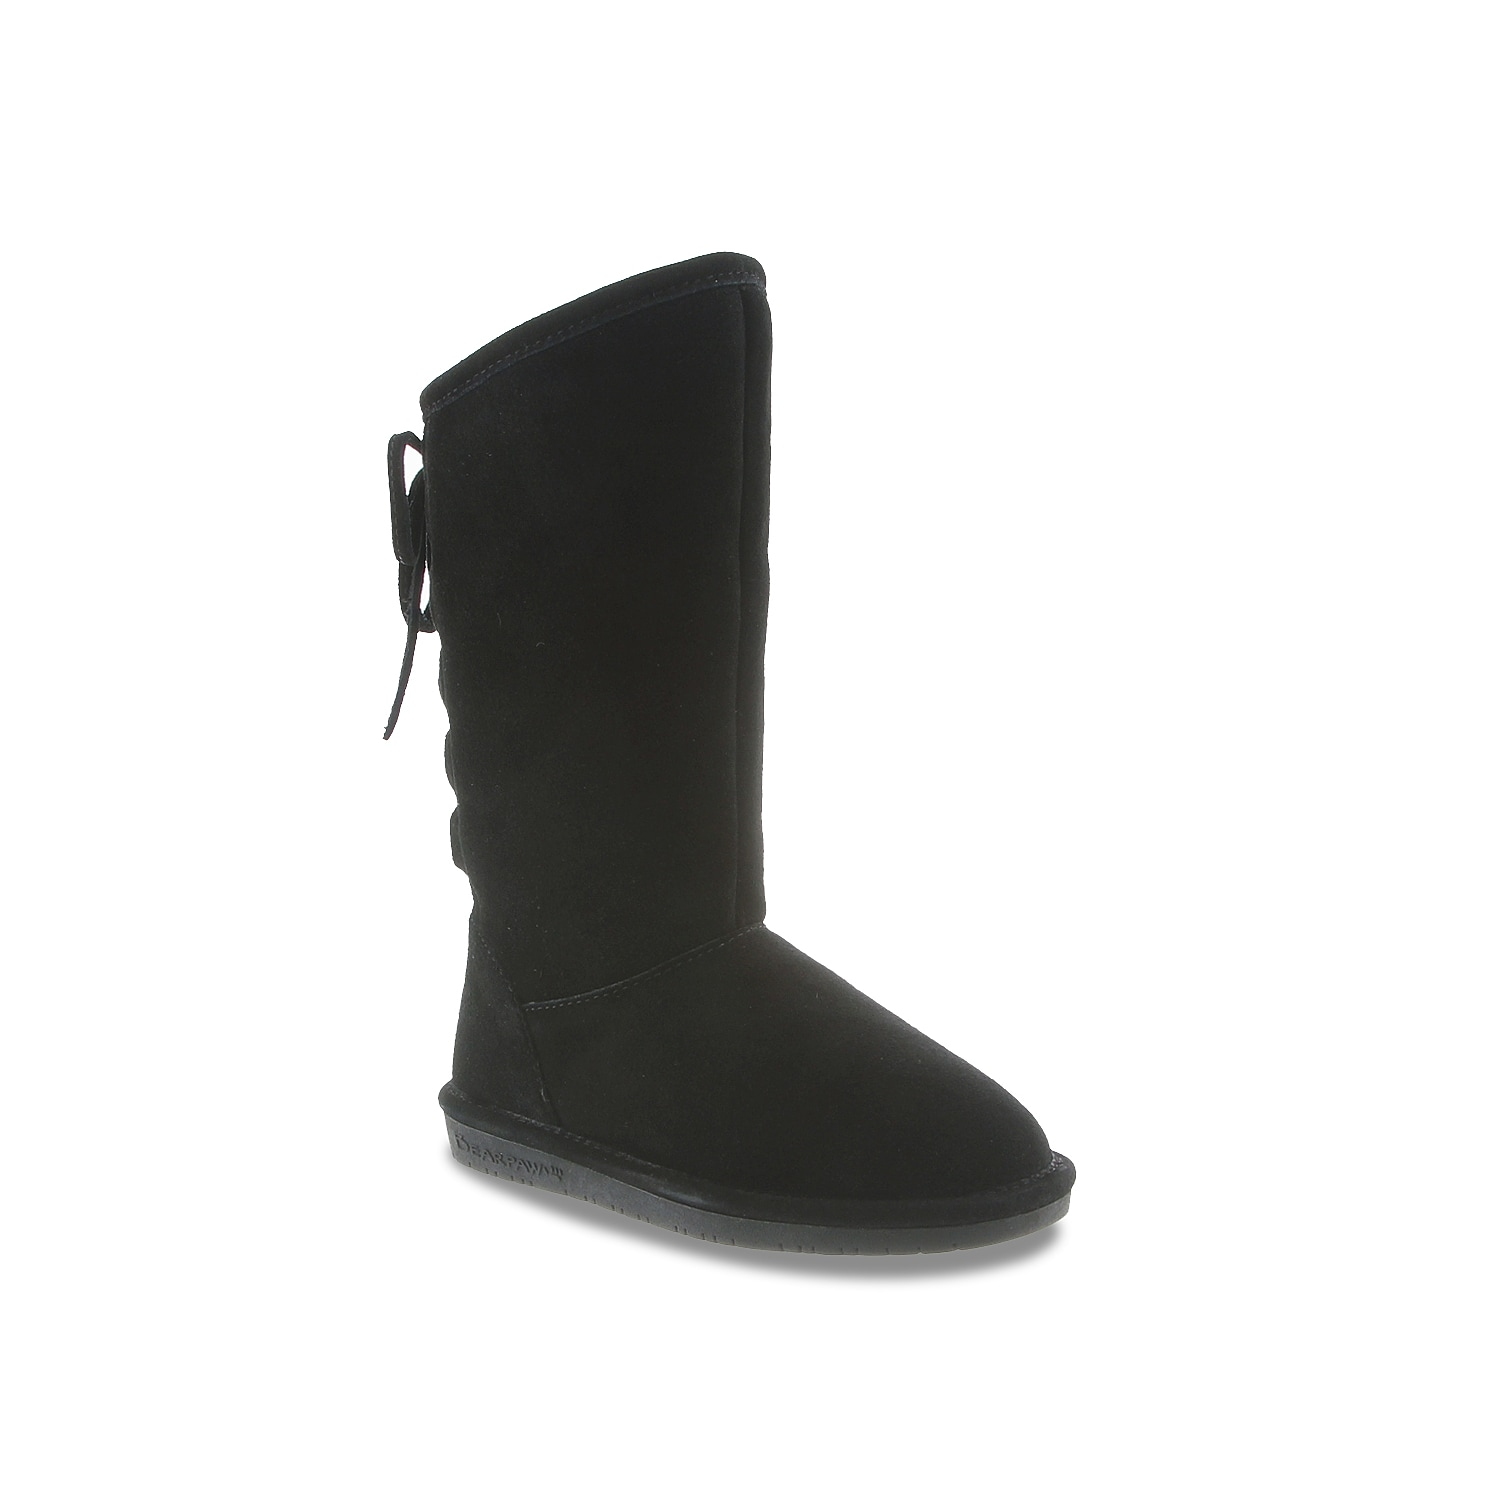 A kids boot that\\\'s cozy, cute, and fun, the Phylly from Bearpaw is perfect for keeping her feet warm and dry this winter season!Not sure which size to order? Clickhereto check out our Kids' Measuring Guide! For more helpful tips and sizing FAQs, clickhere.